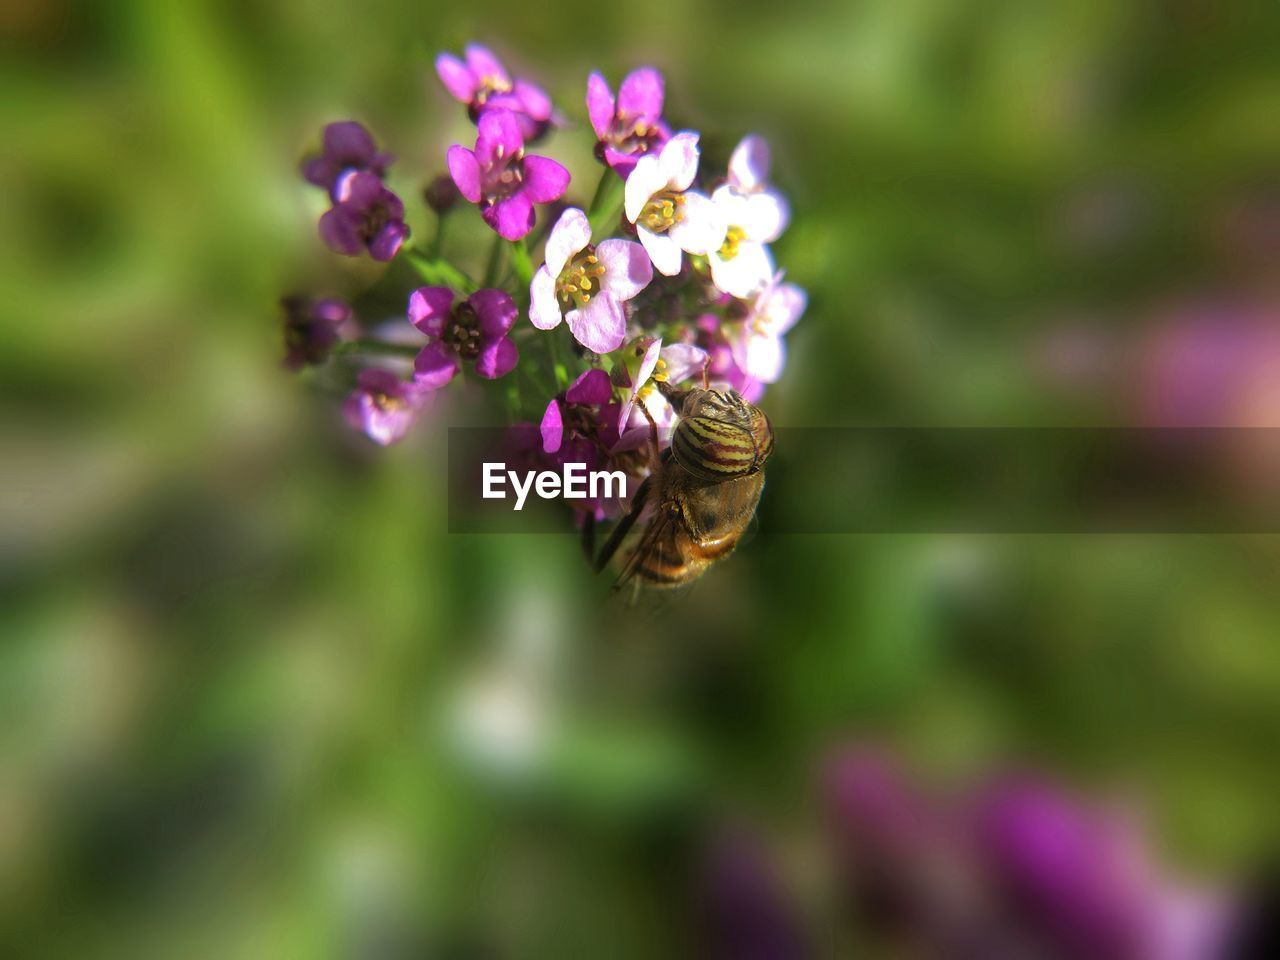 flowering plant, flower, invertebrate, animals in the wild, insect, animal wildlife, beauty in nature, fragility, animal themes, animal, bee, freshness, vulnerability, one animal, plant, petal, growth, close-up, purple, flower head, pollination, no people, honey bee, outdoors